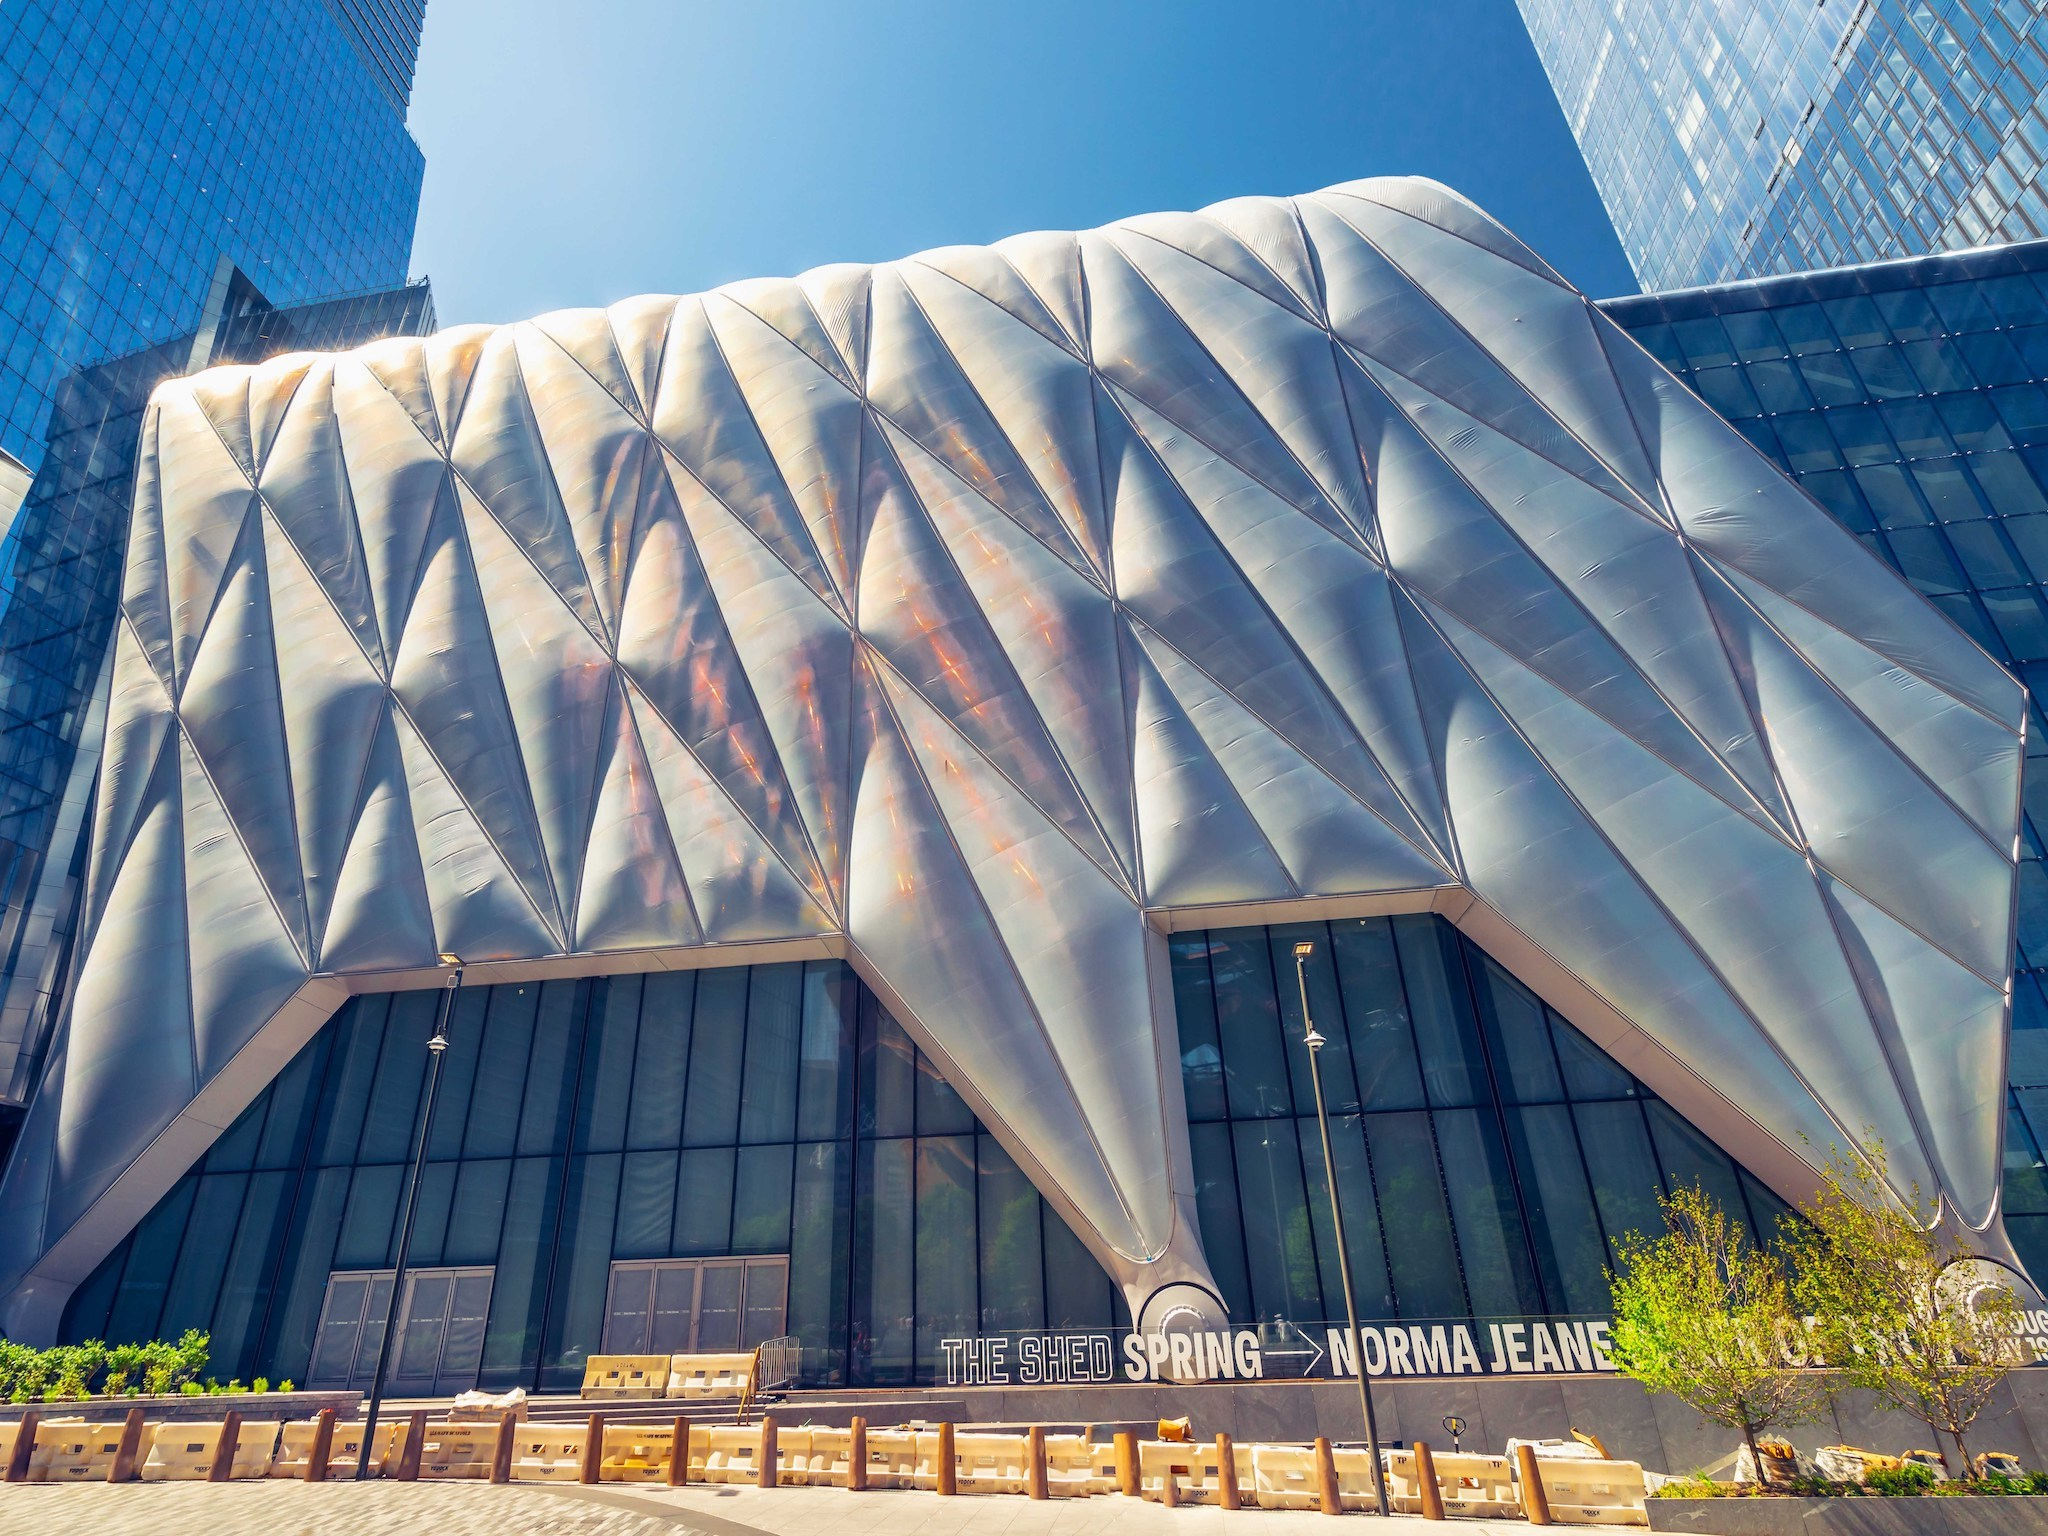 The Shed at Hudson Yards has a cool new online arts program